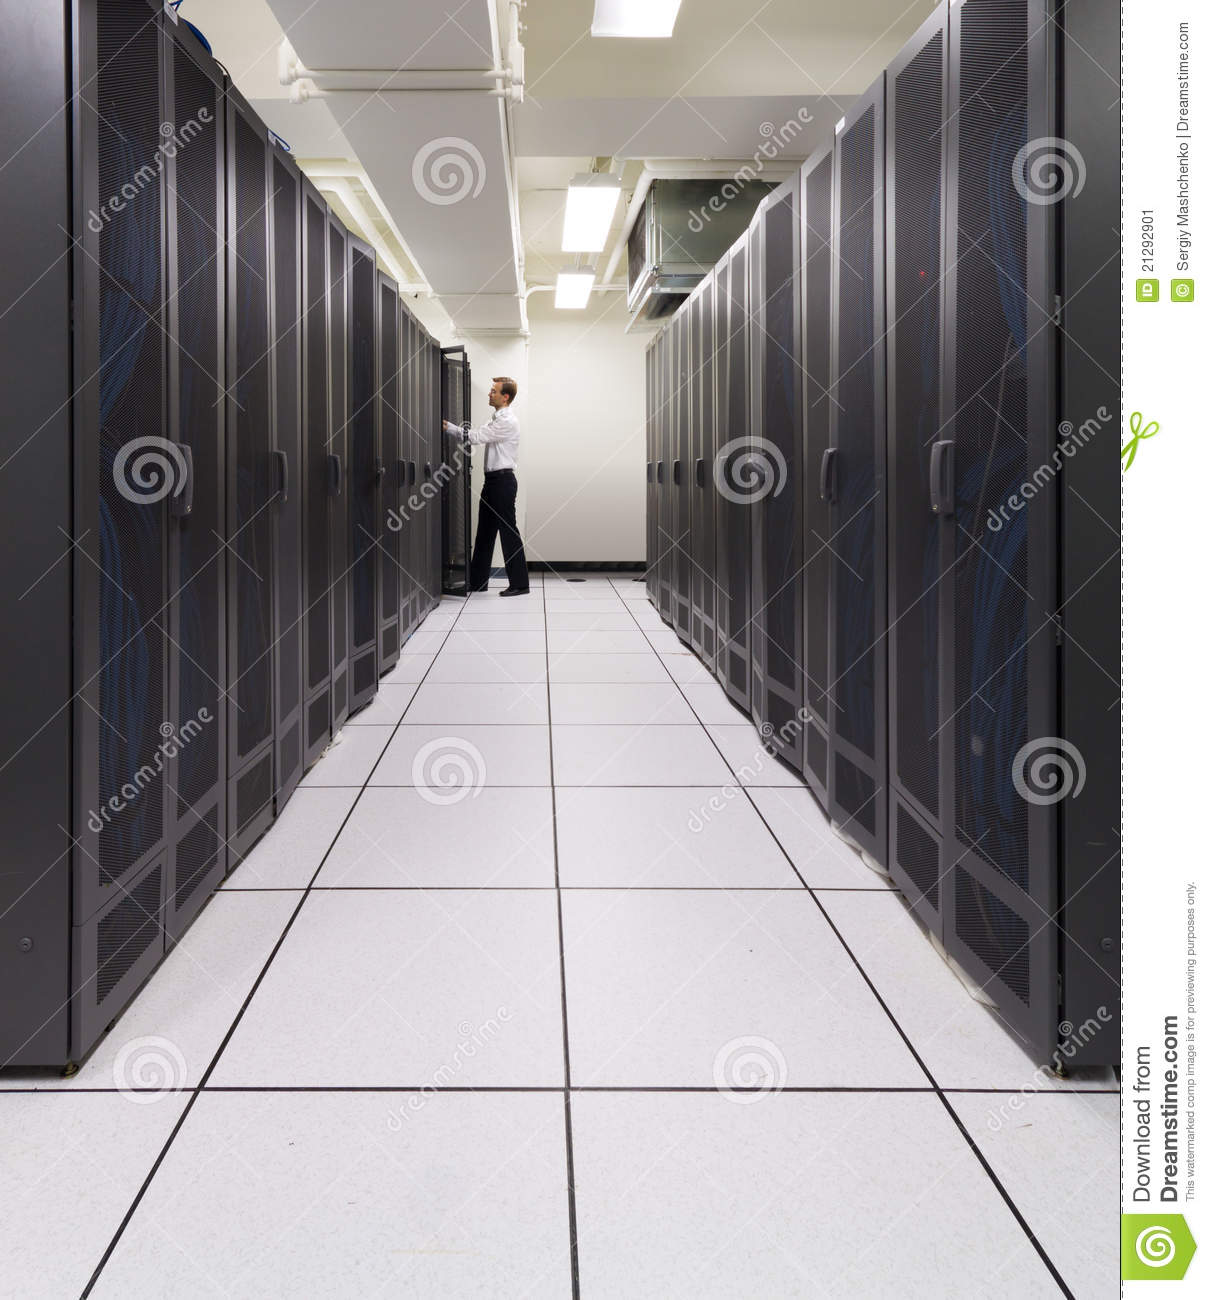 Supercomputer in action